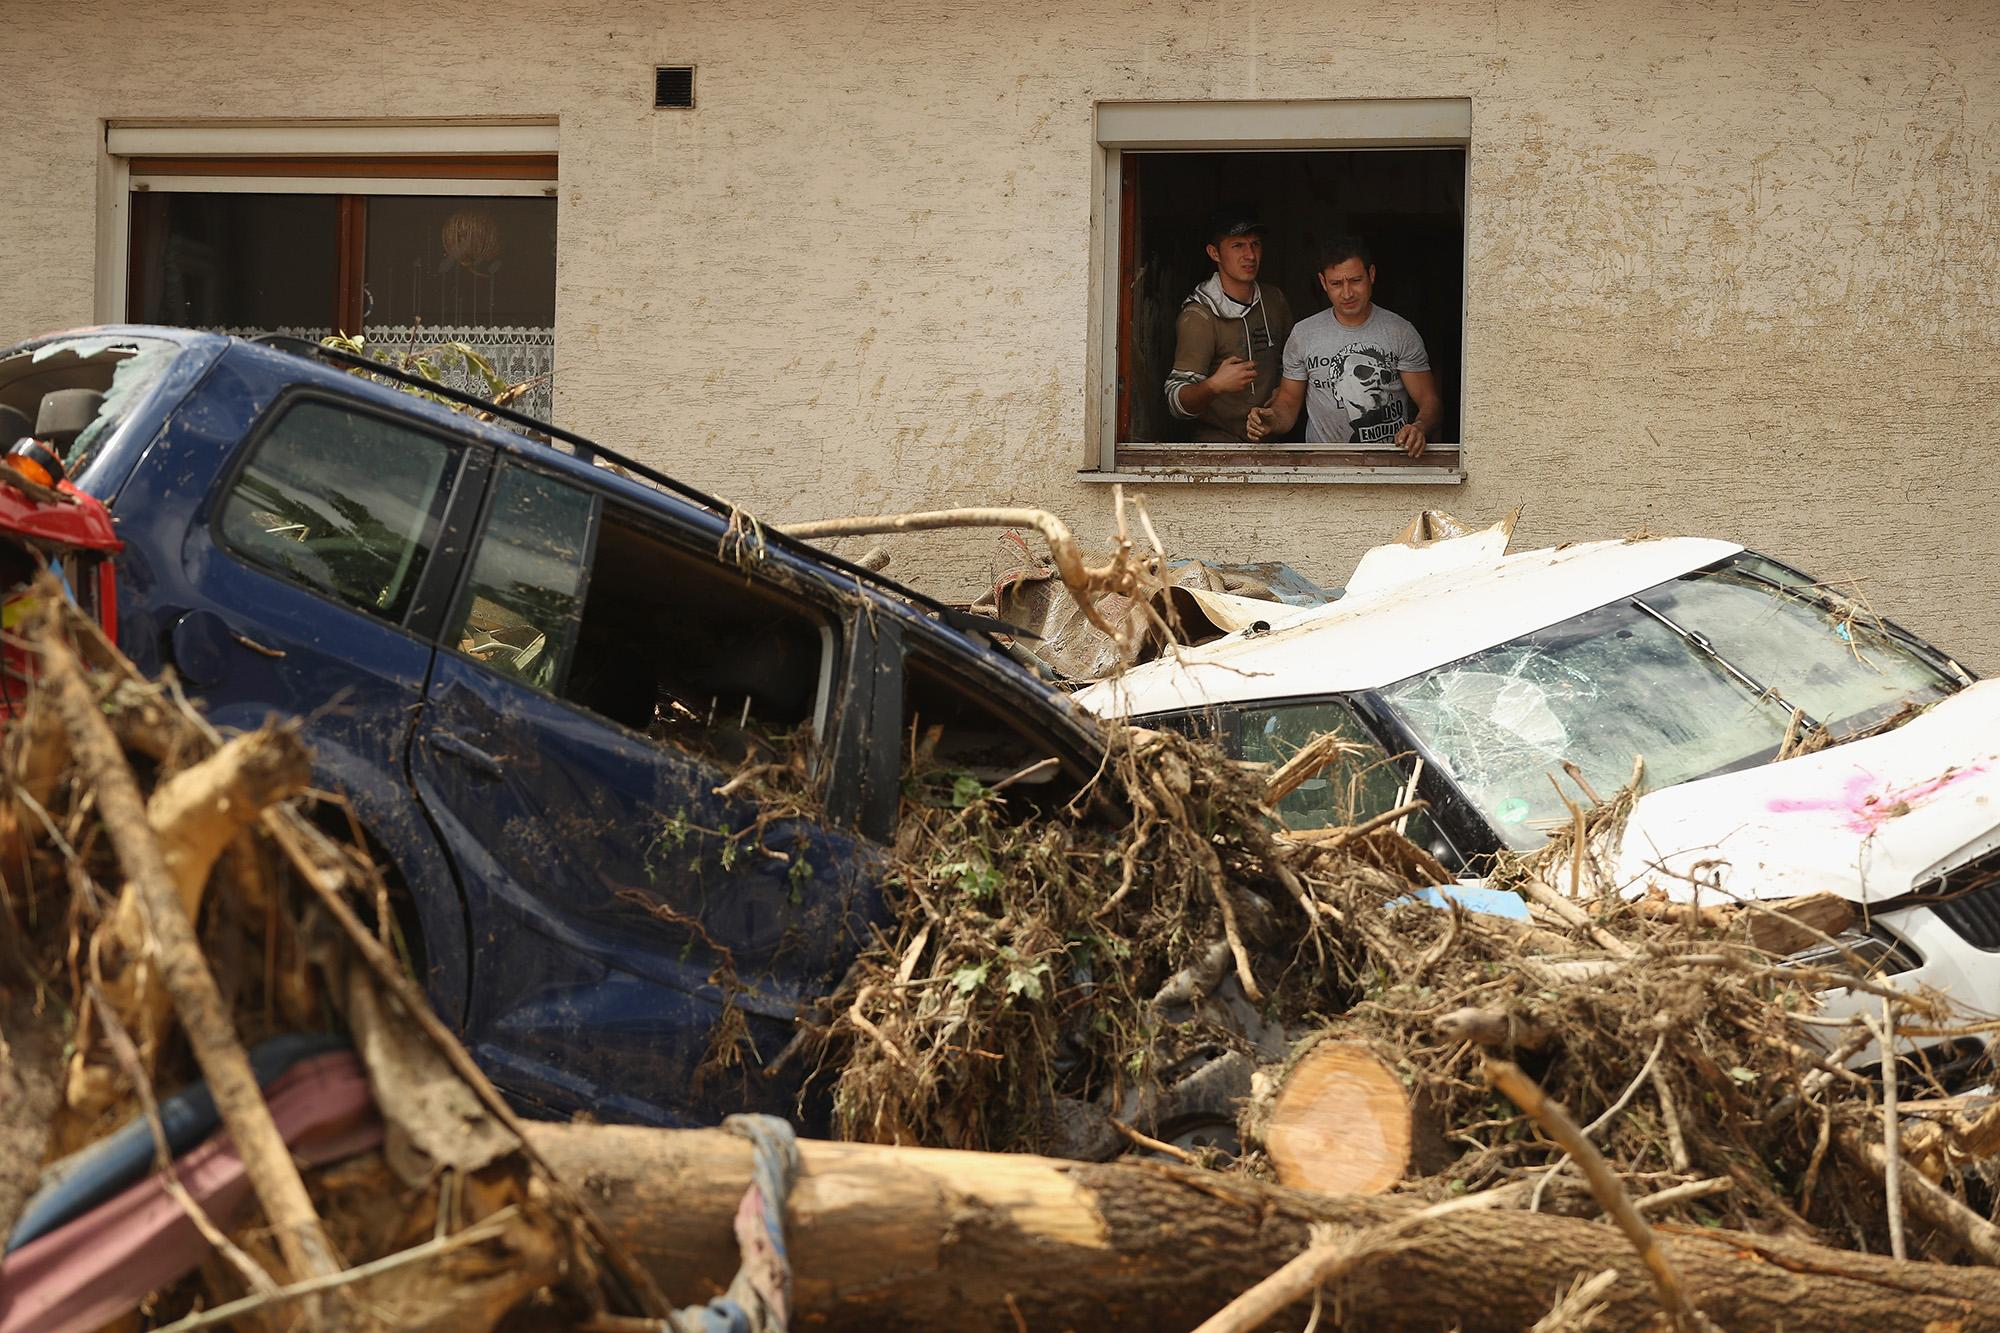 <p>Two men throw ruined household items from a window on May 30, 2016, next to cars smashed by a flood the night before in Braunsbach, Germany. (Sean Gallup/Getty Images) </p>